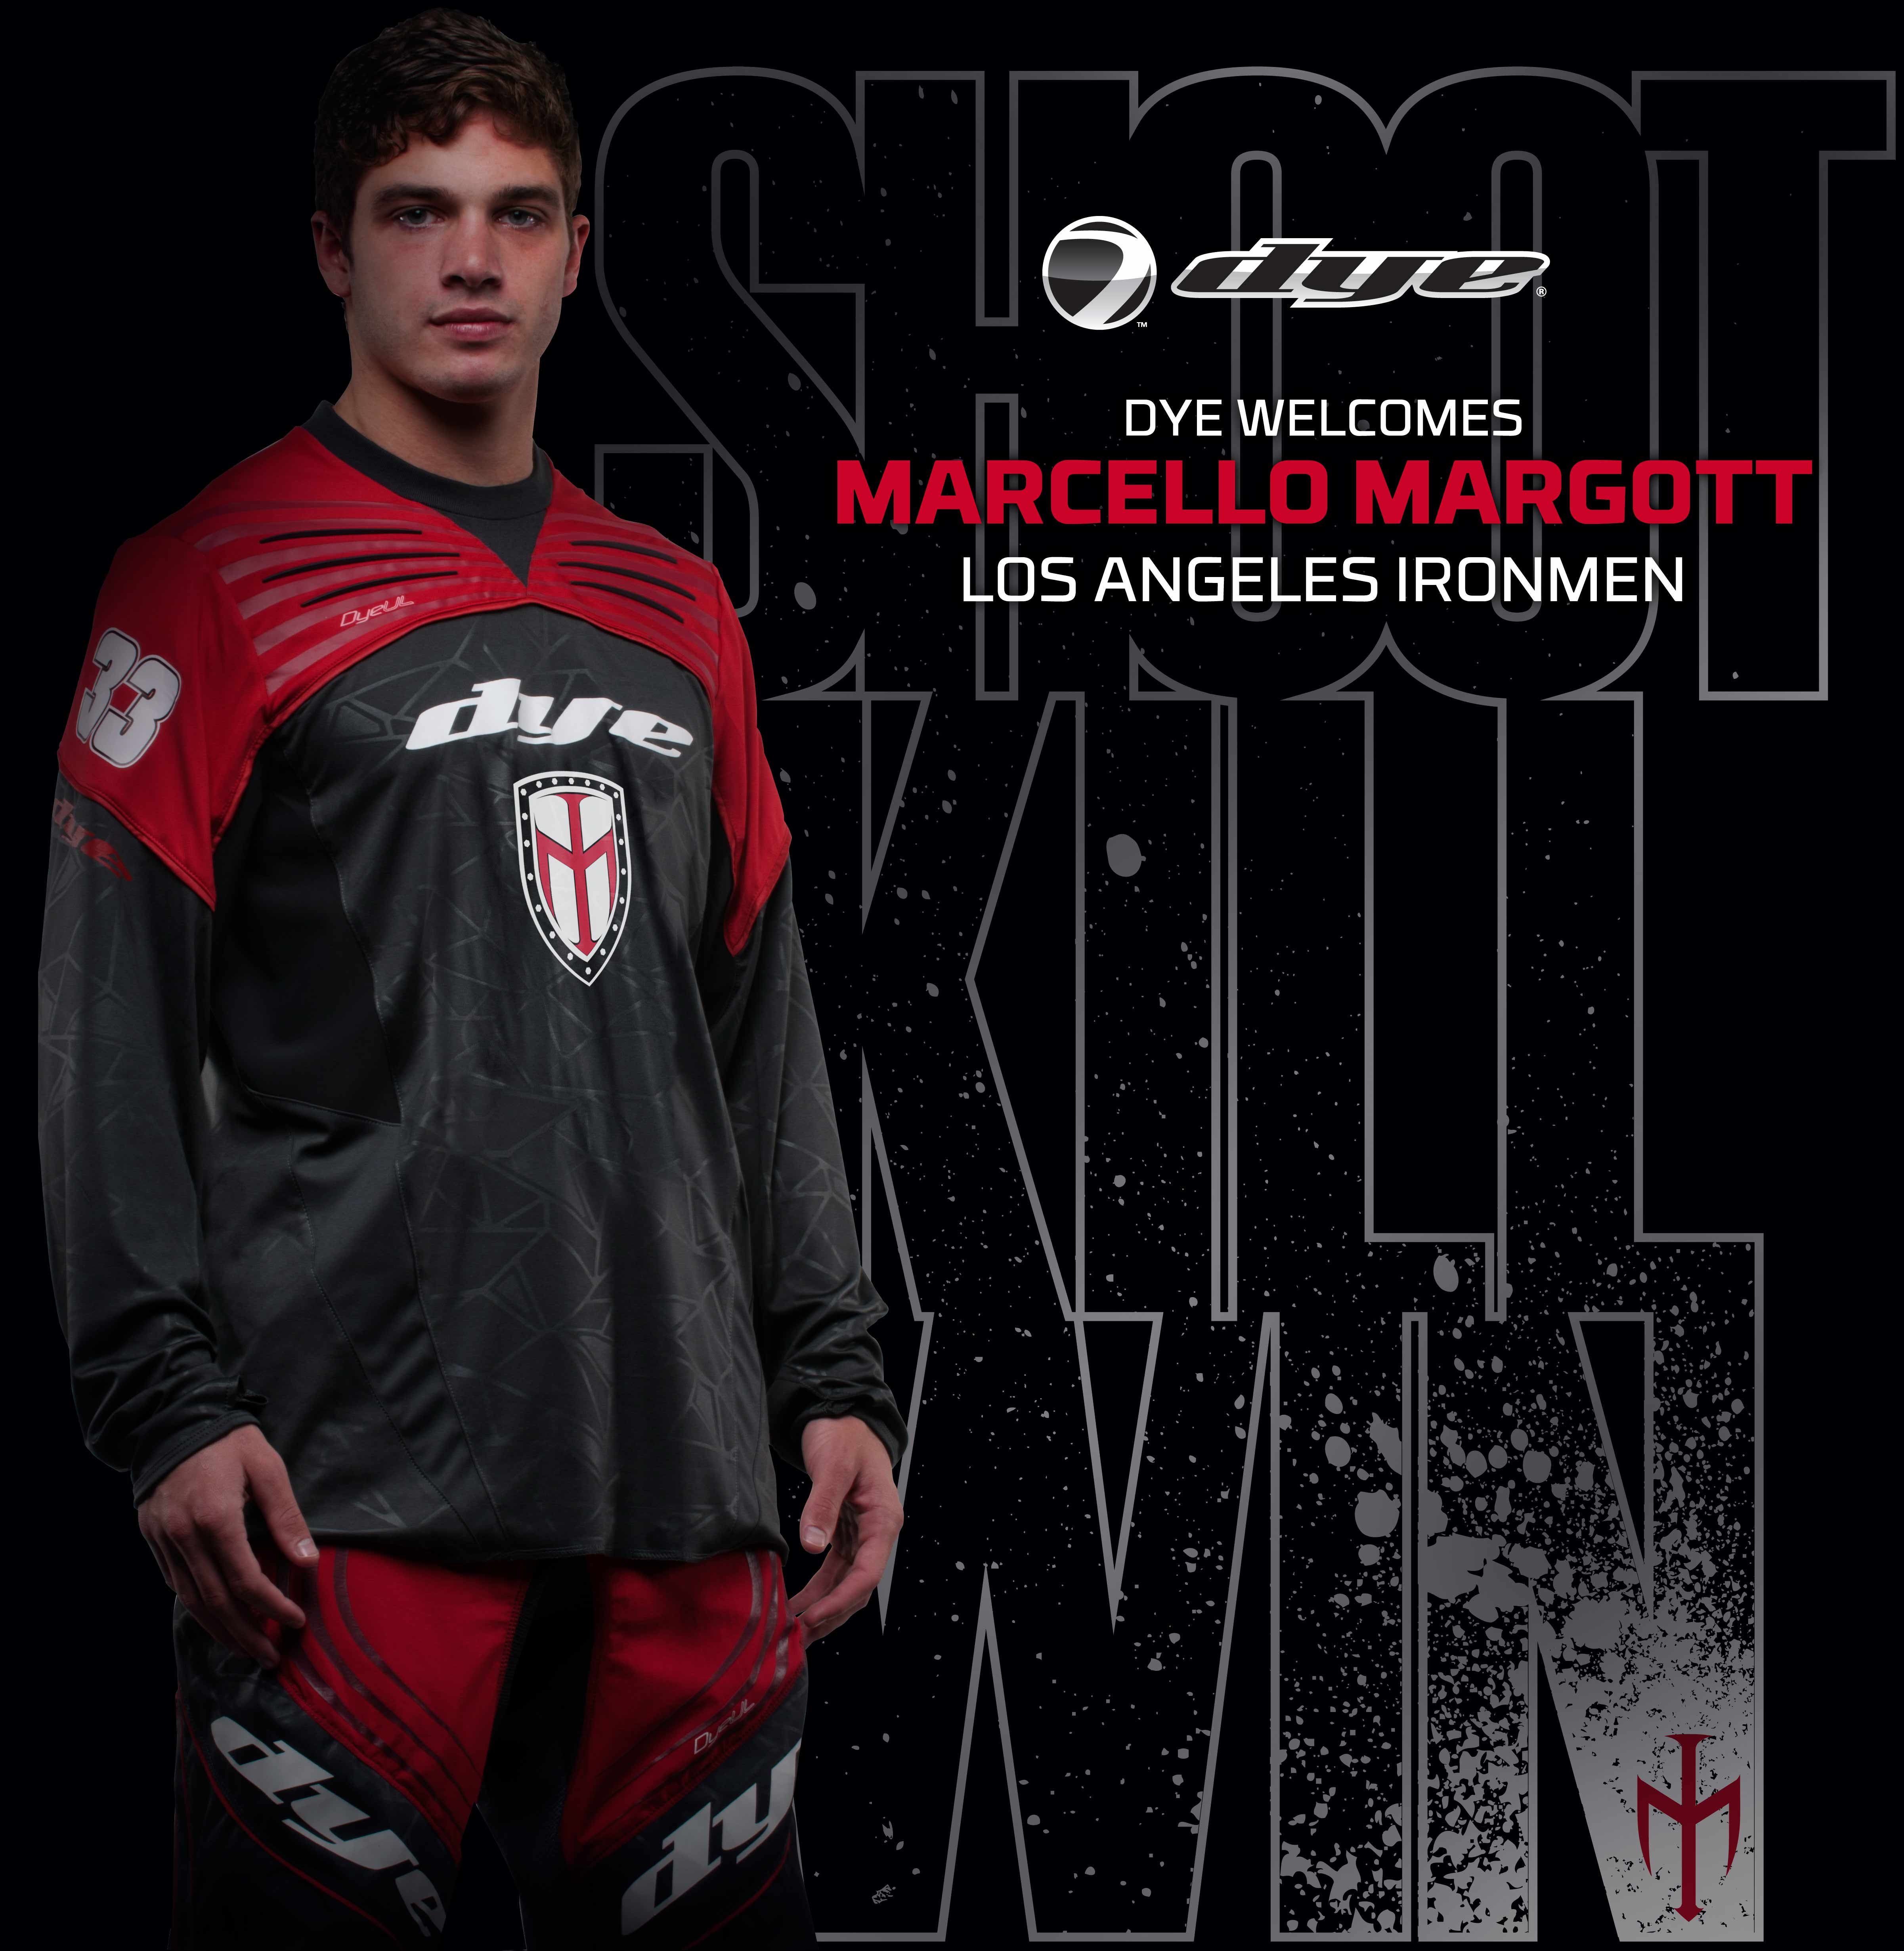 Marcello Margott signs with LA Ironmen